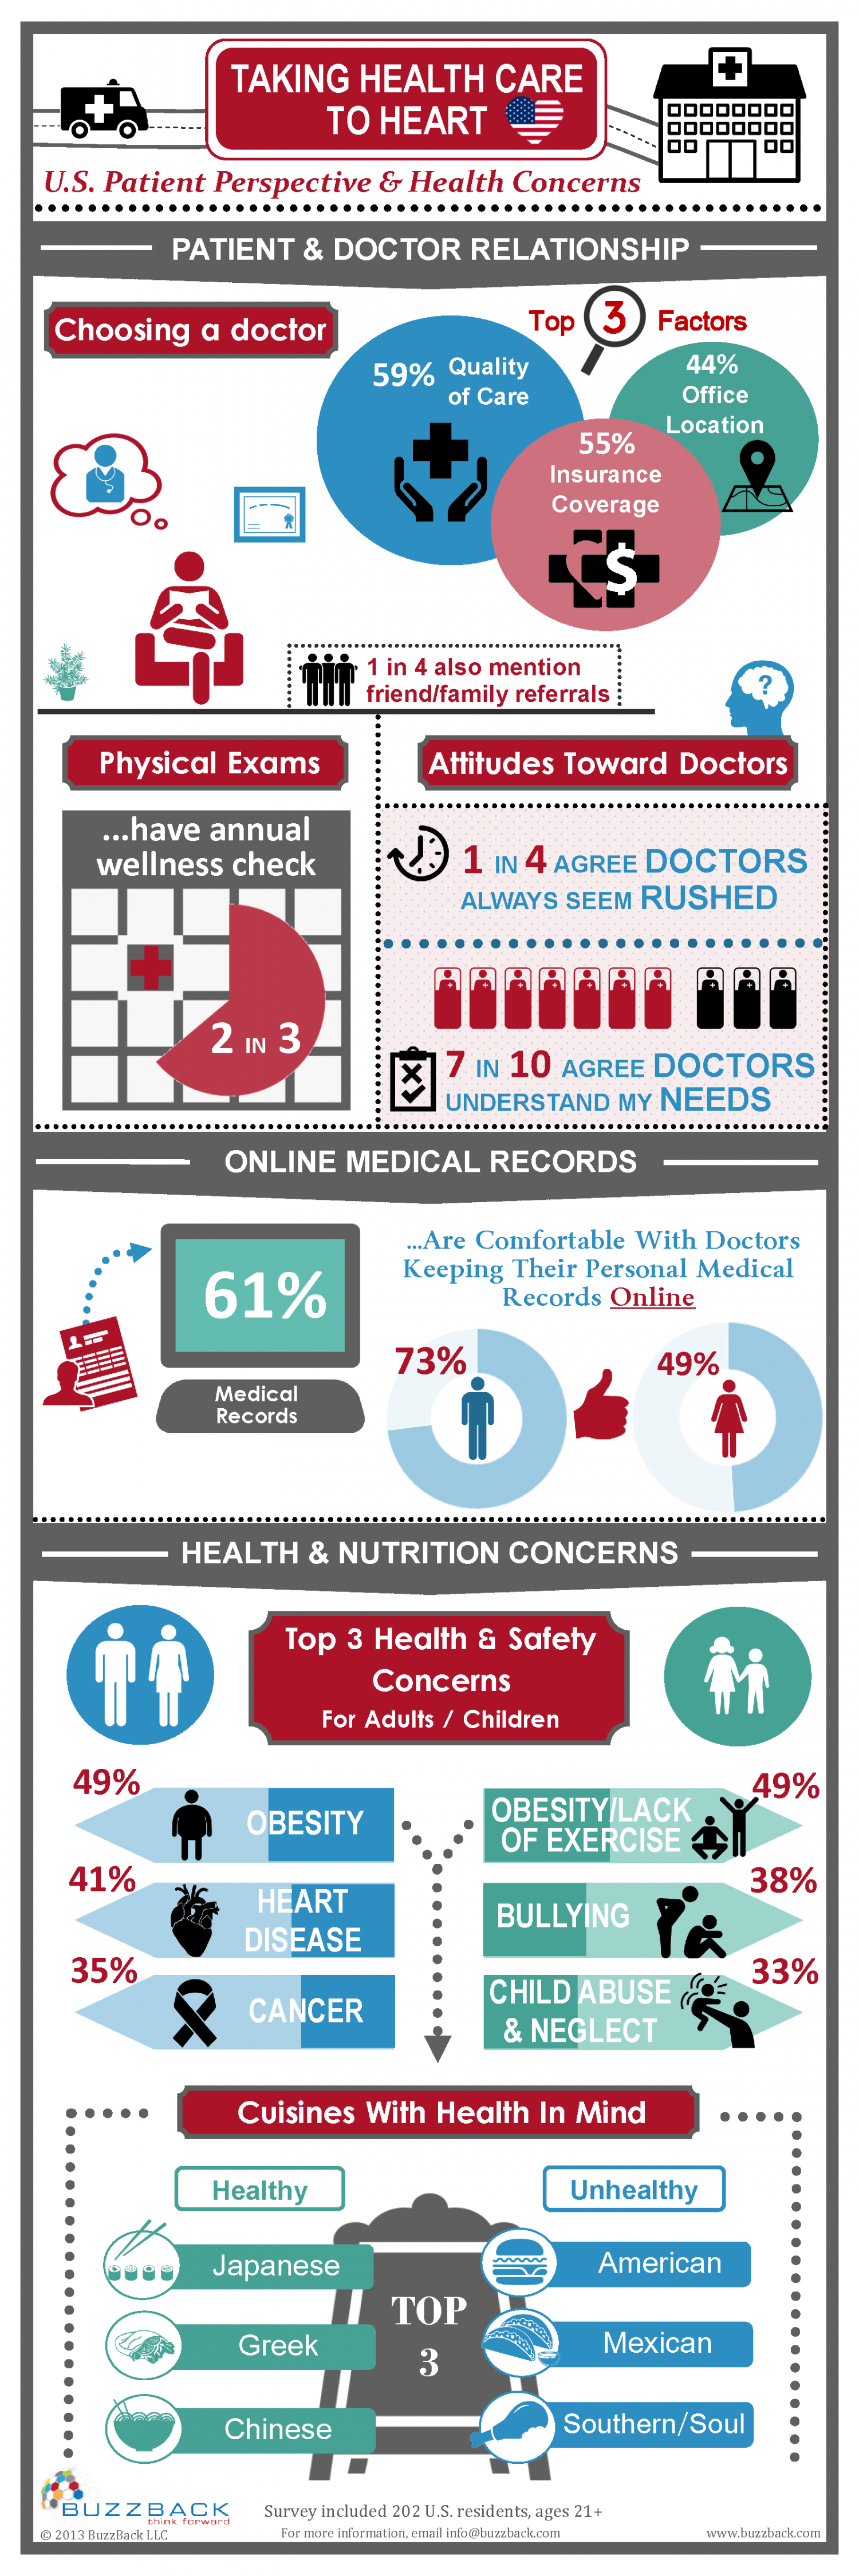 Taking US Health Care To Heart Infographic